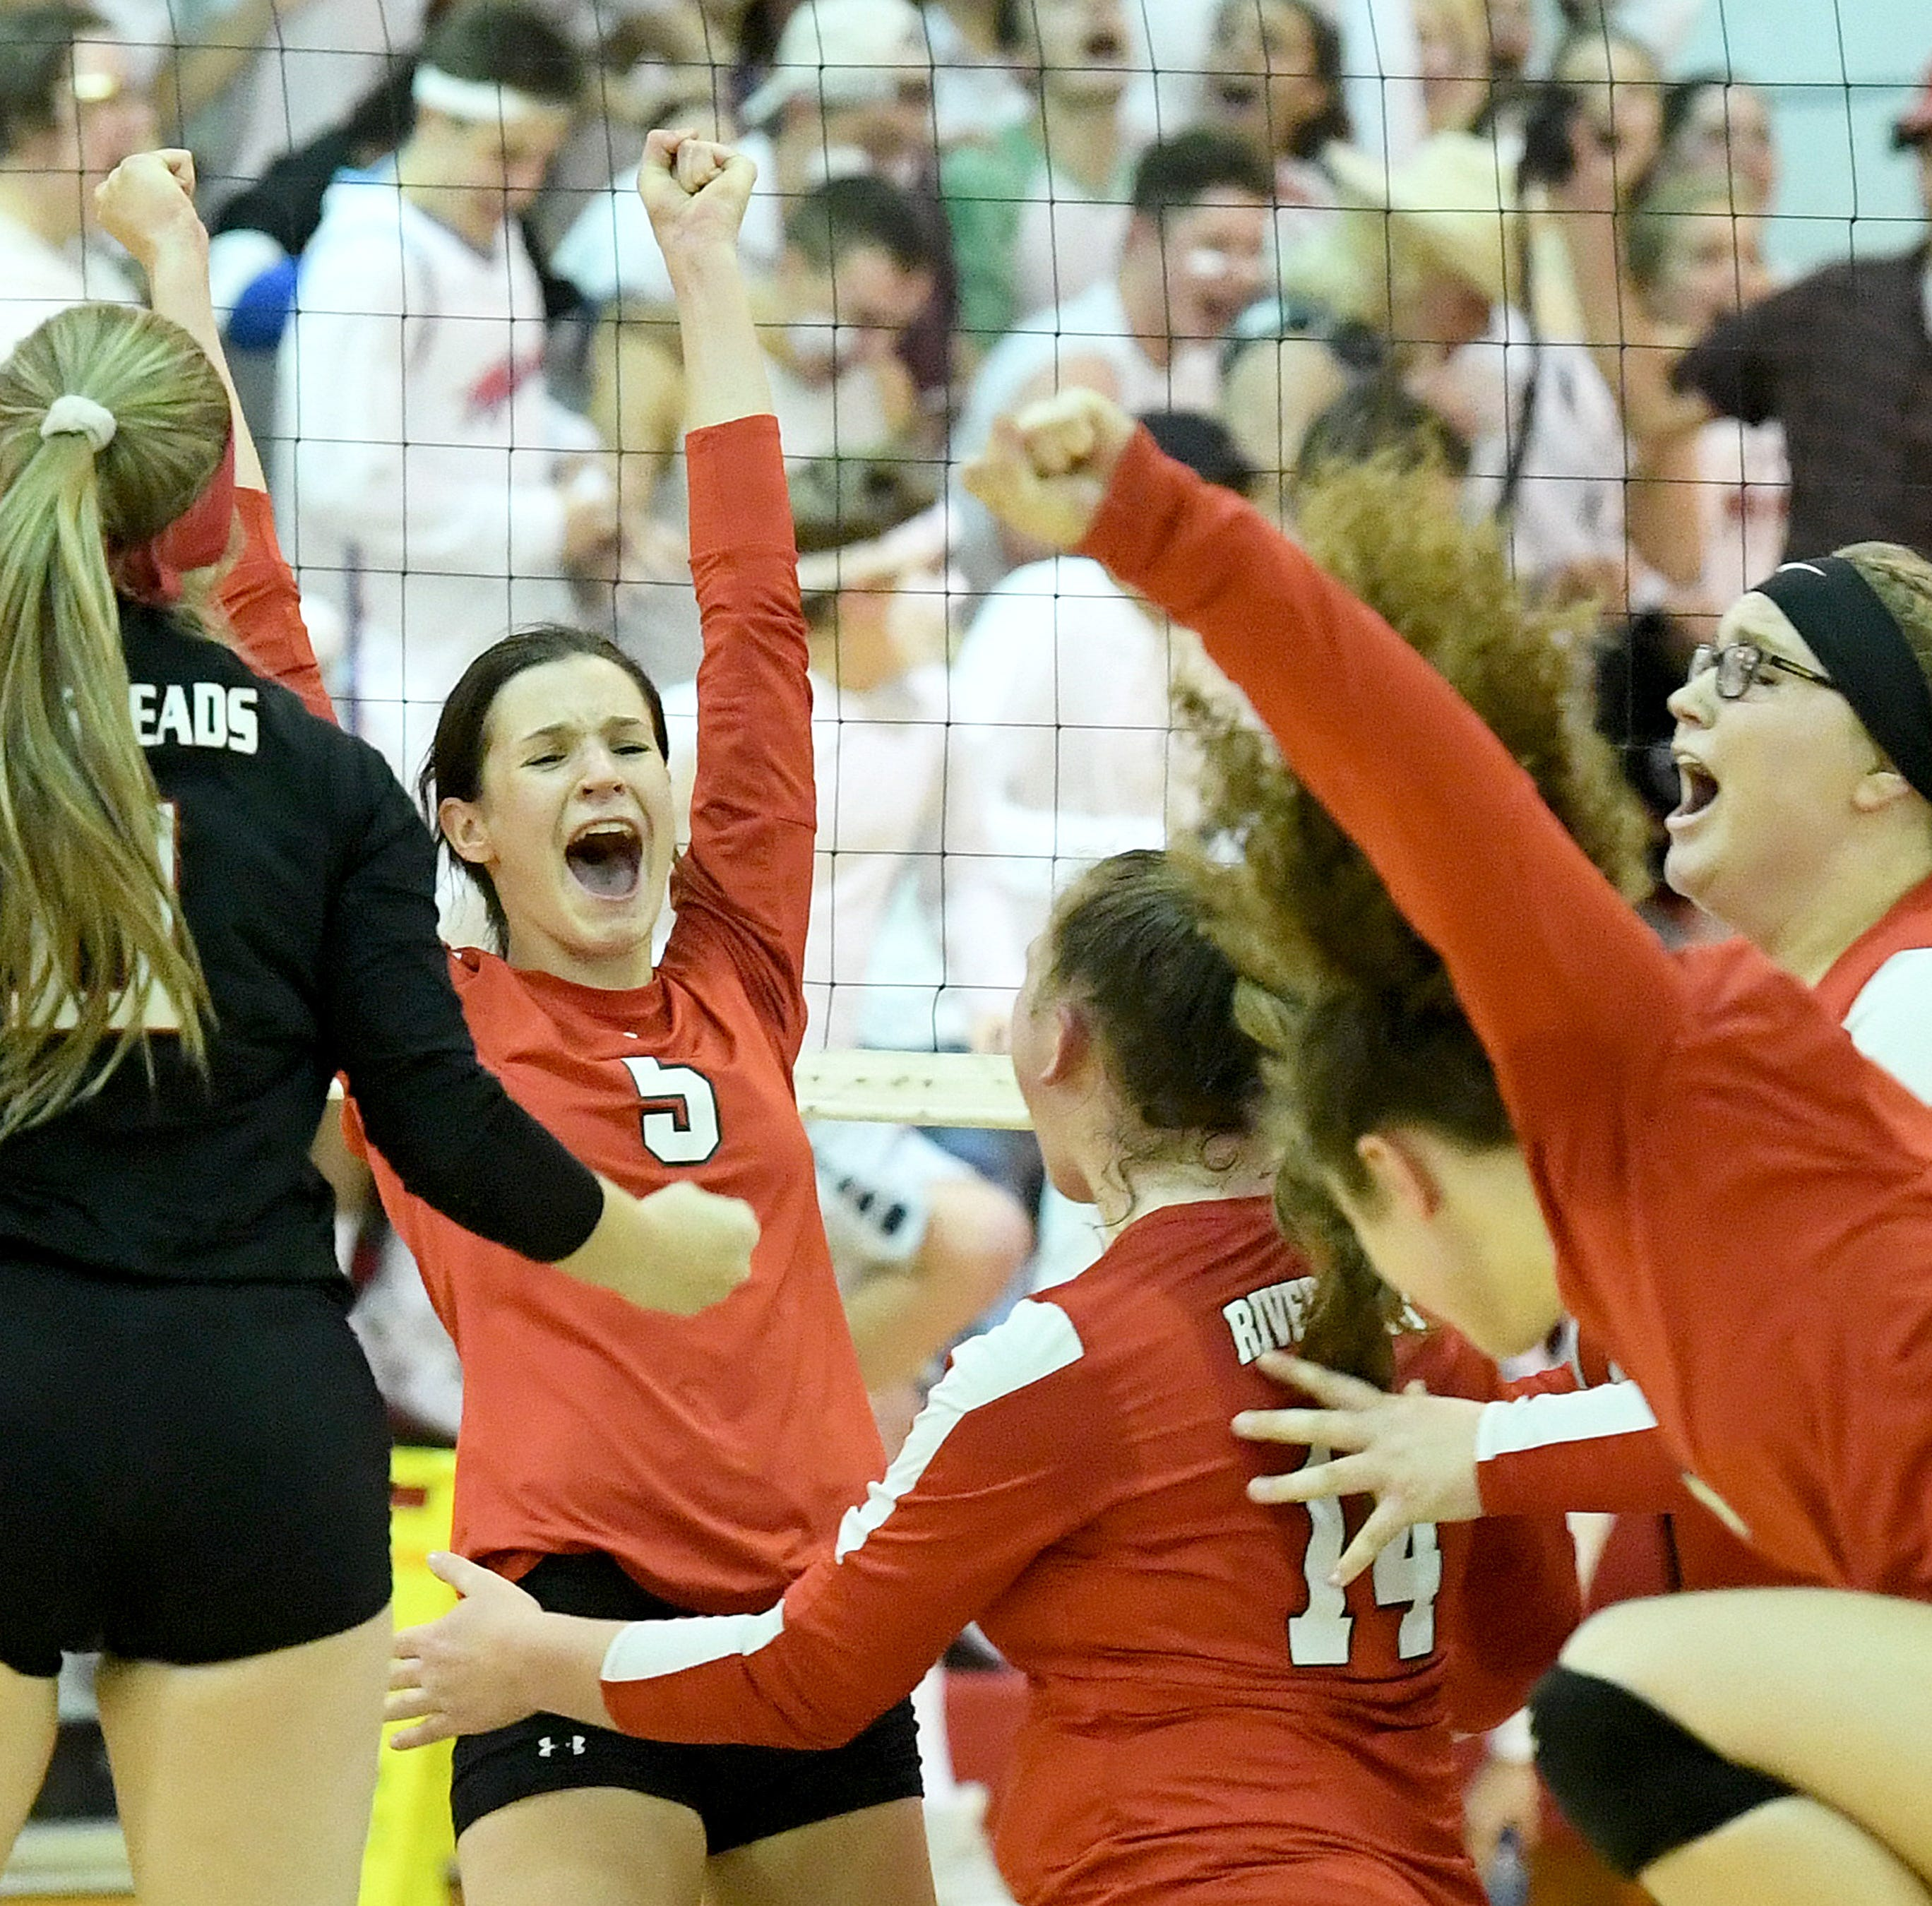 Photos: Riverheads beats Mathews, wins state semi finals to advance